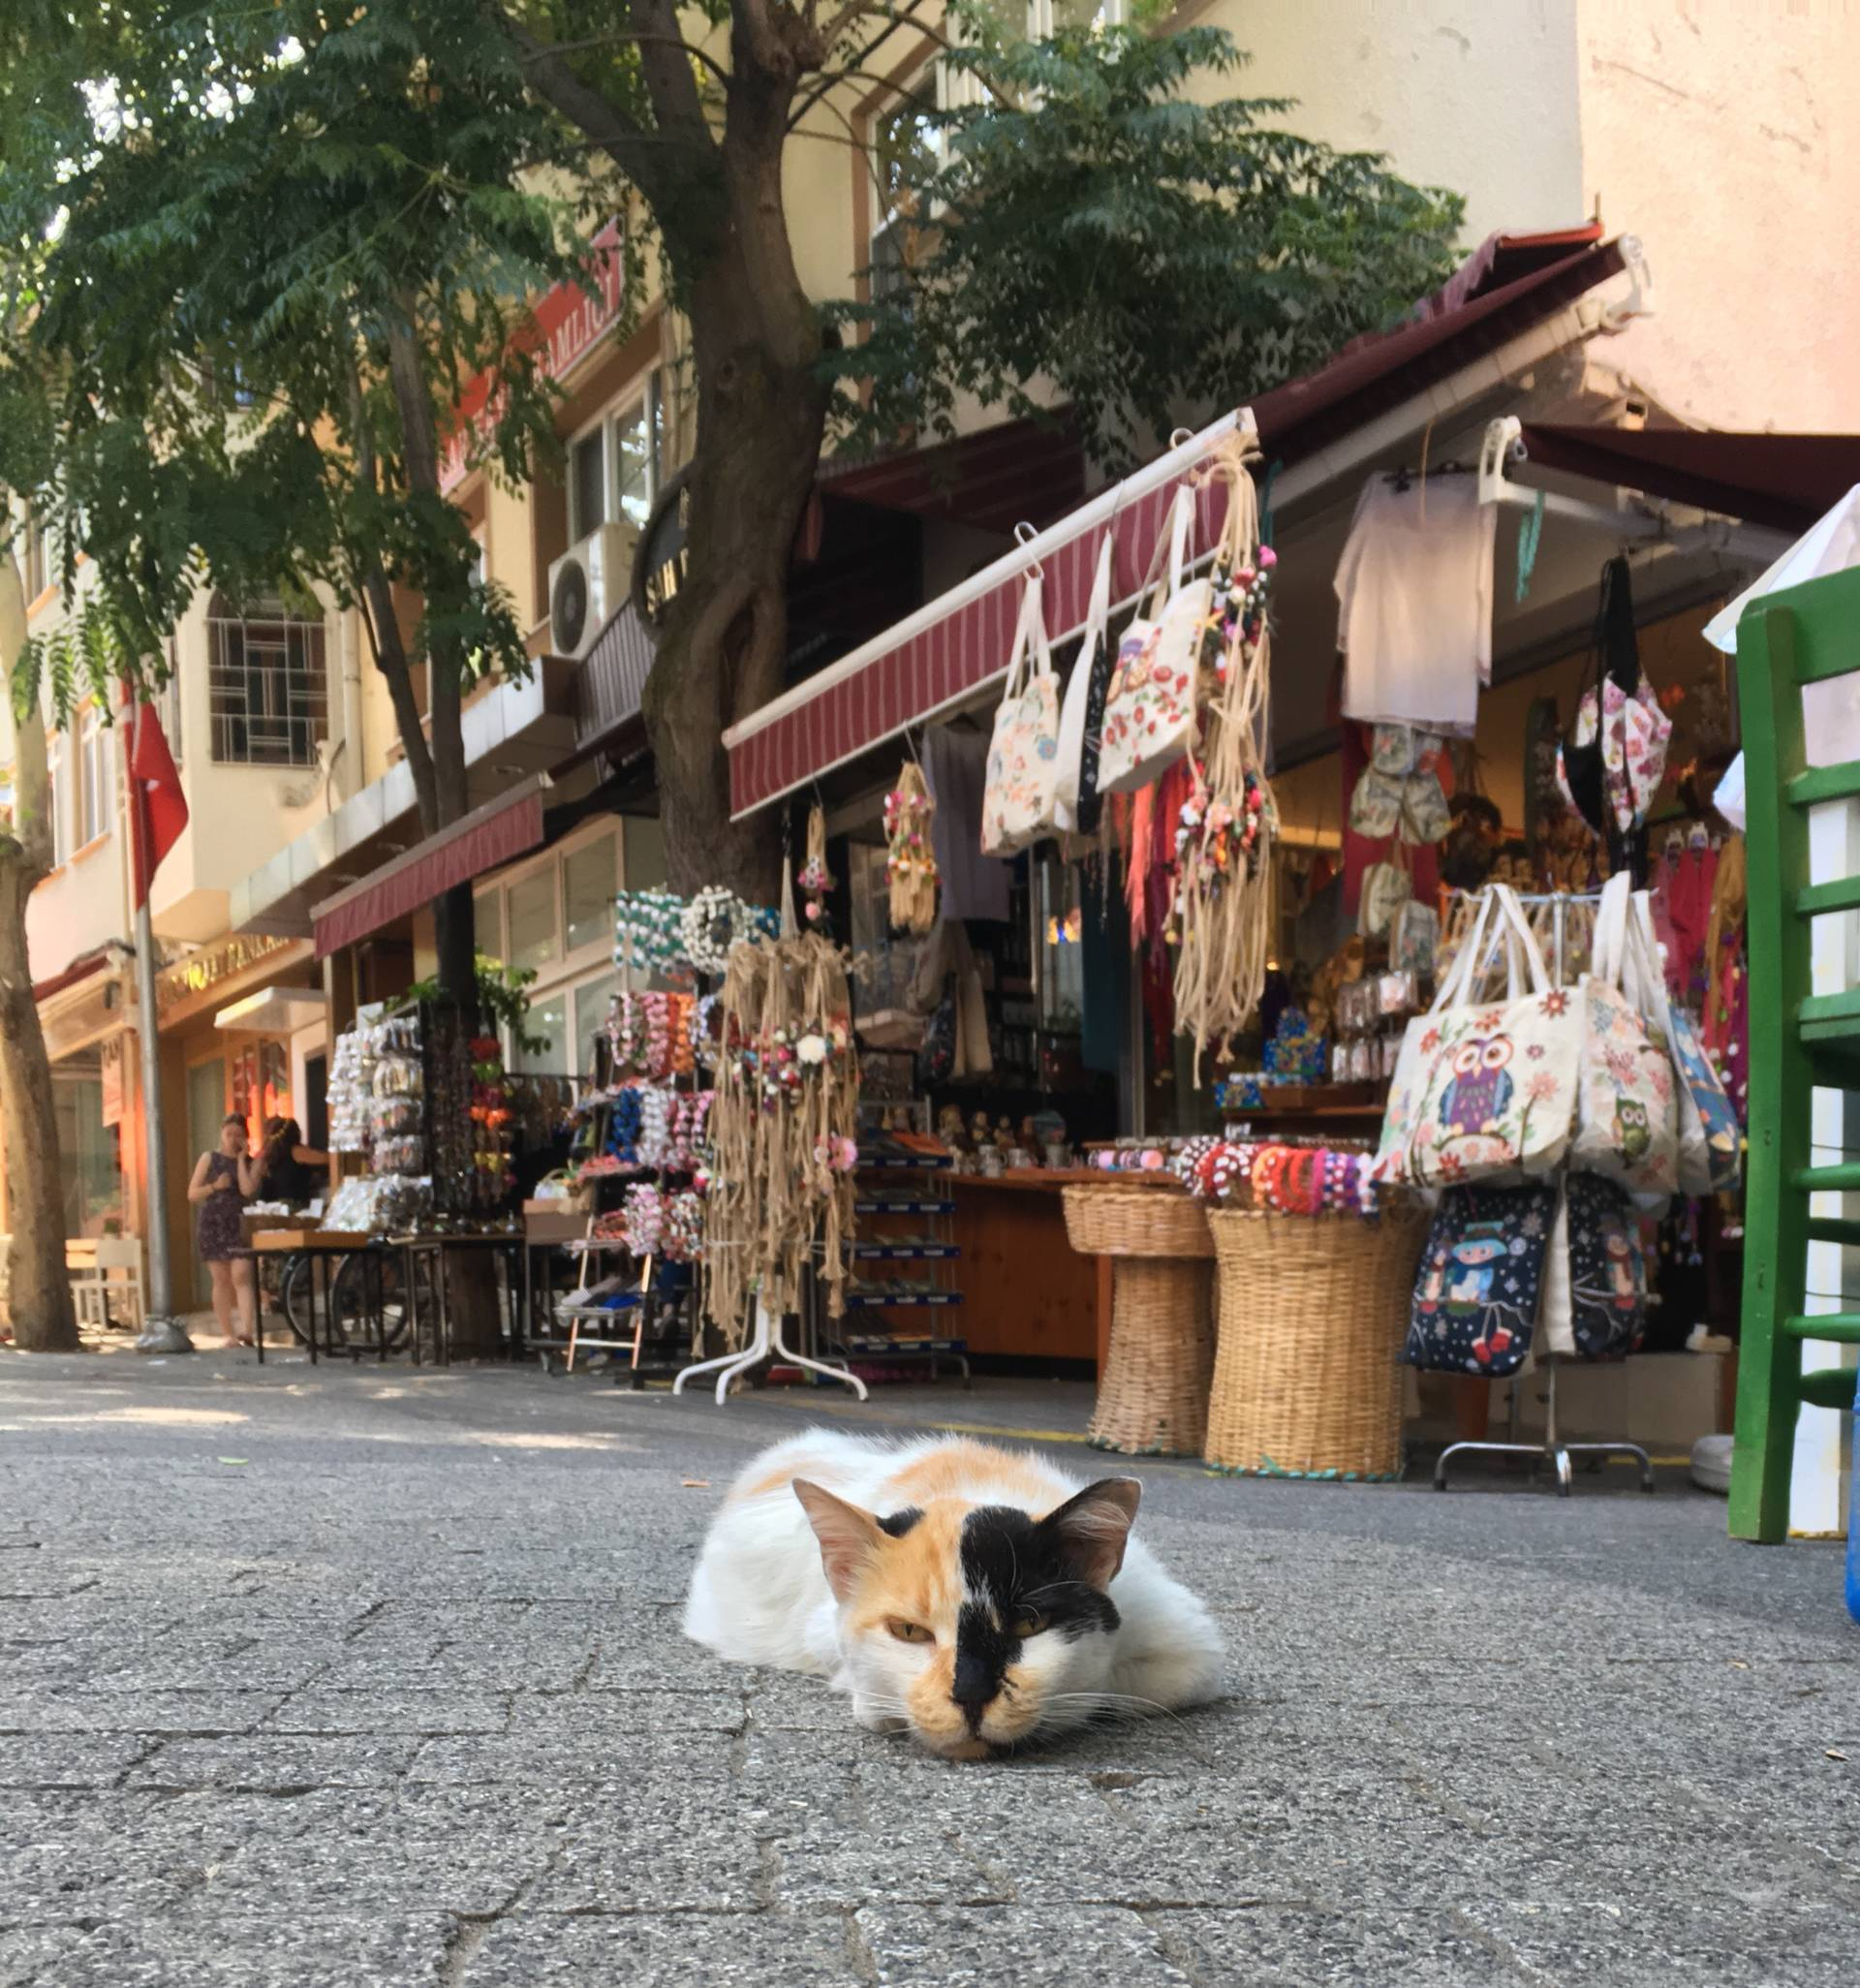 Istanbul is a magical city full of affectionate well-kept beautiful cats. Istanbul has a long tradition of respecting and adoring its cats.